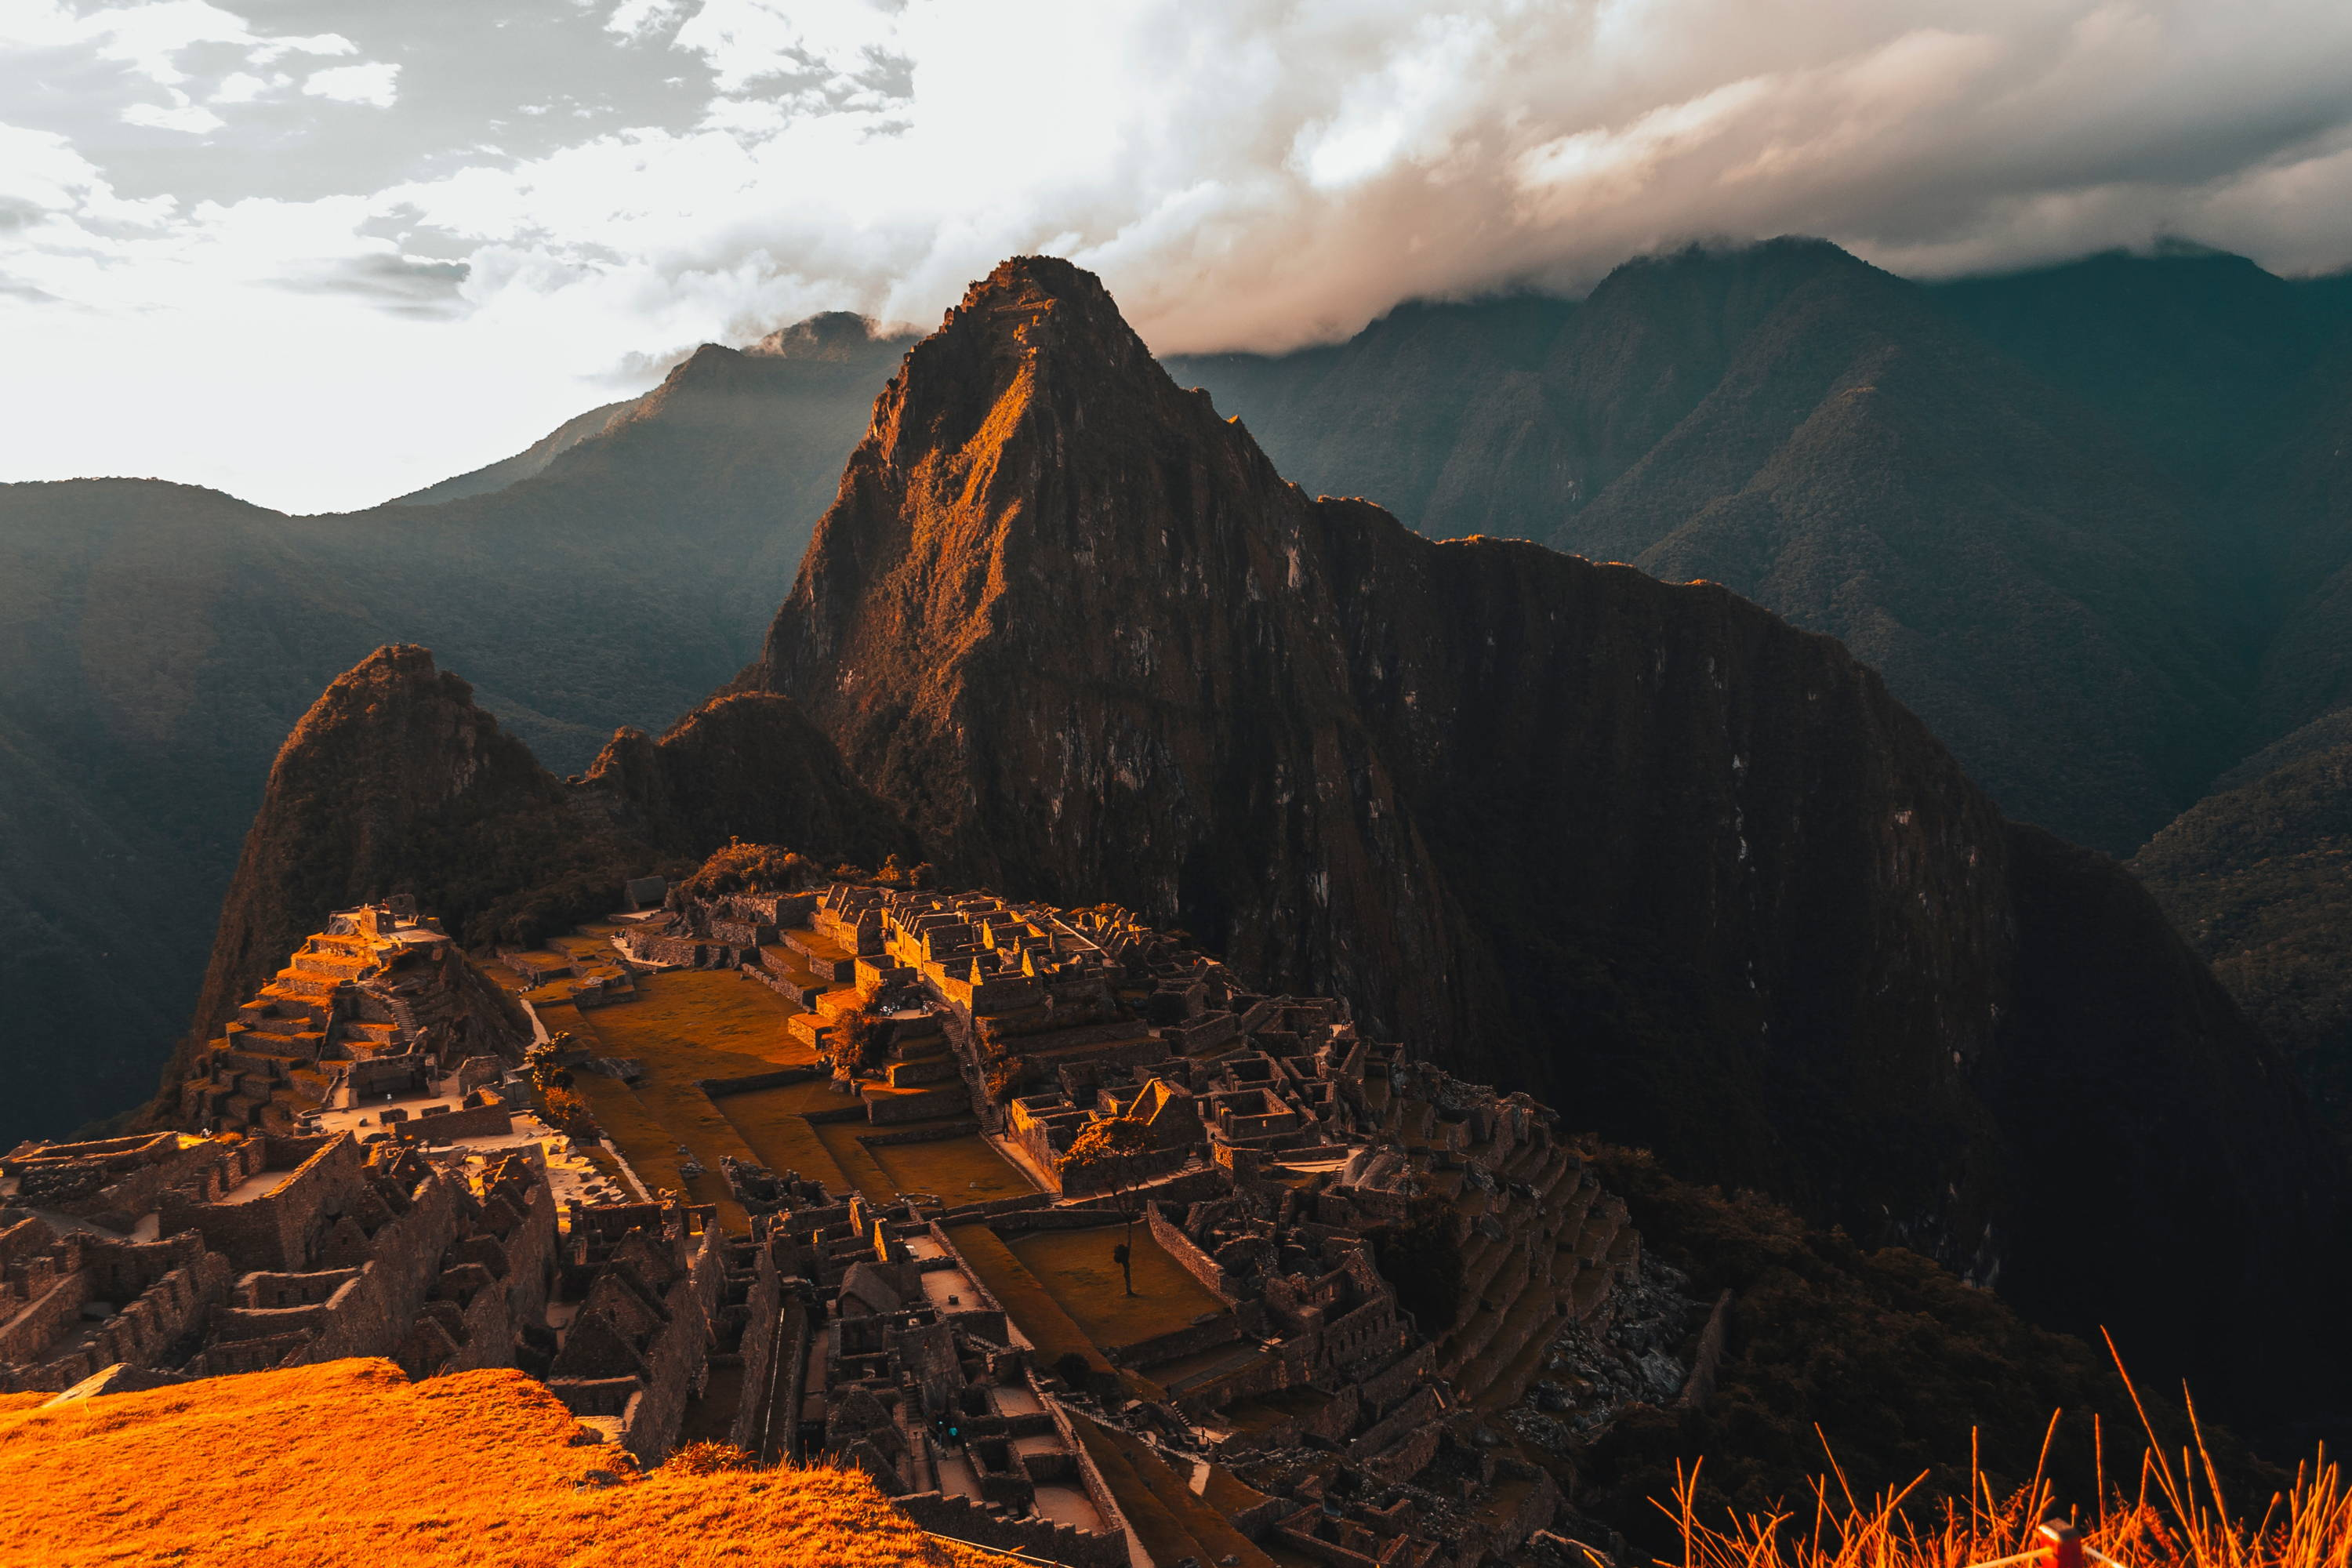 Sun sets over the Inca Trail Hike up to Machu Piccu with golden hue.